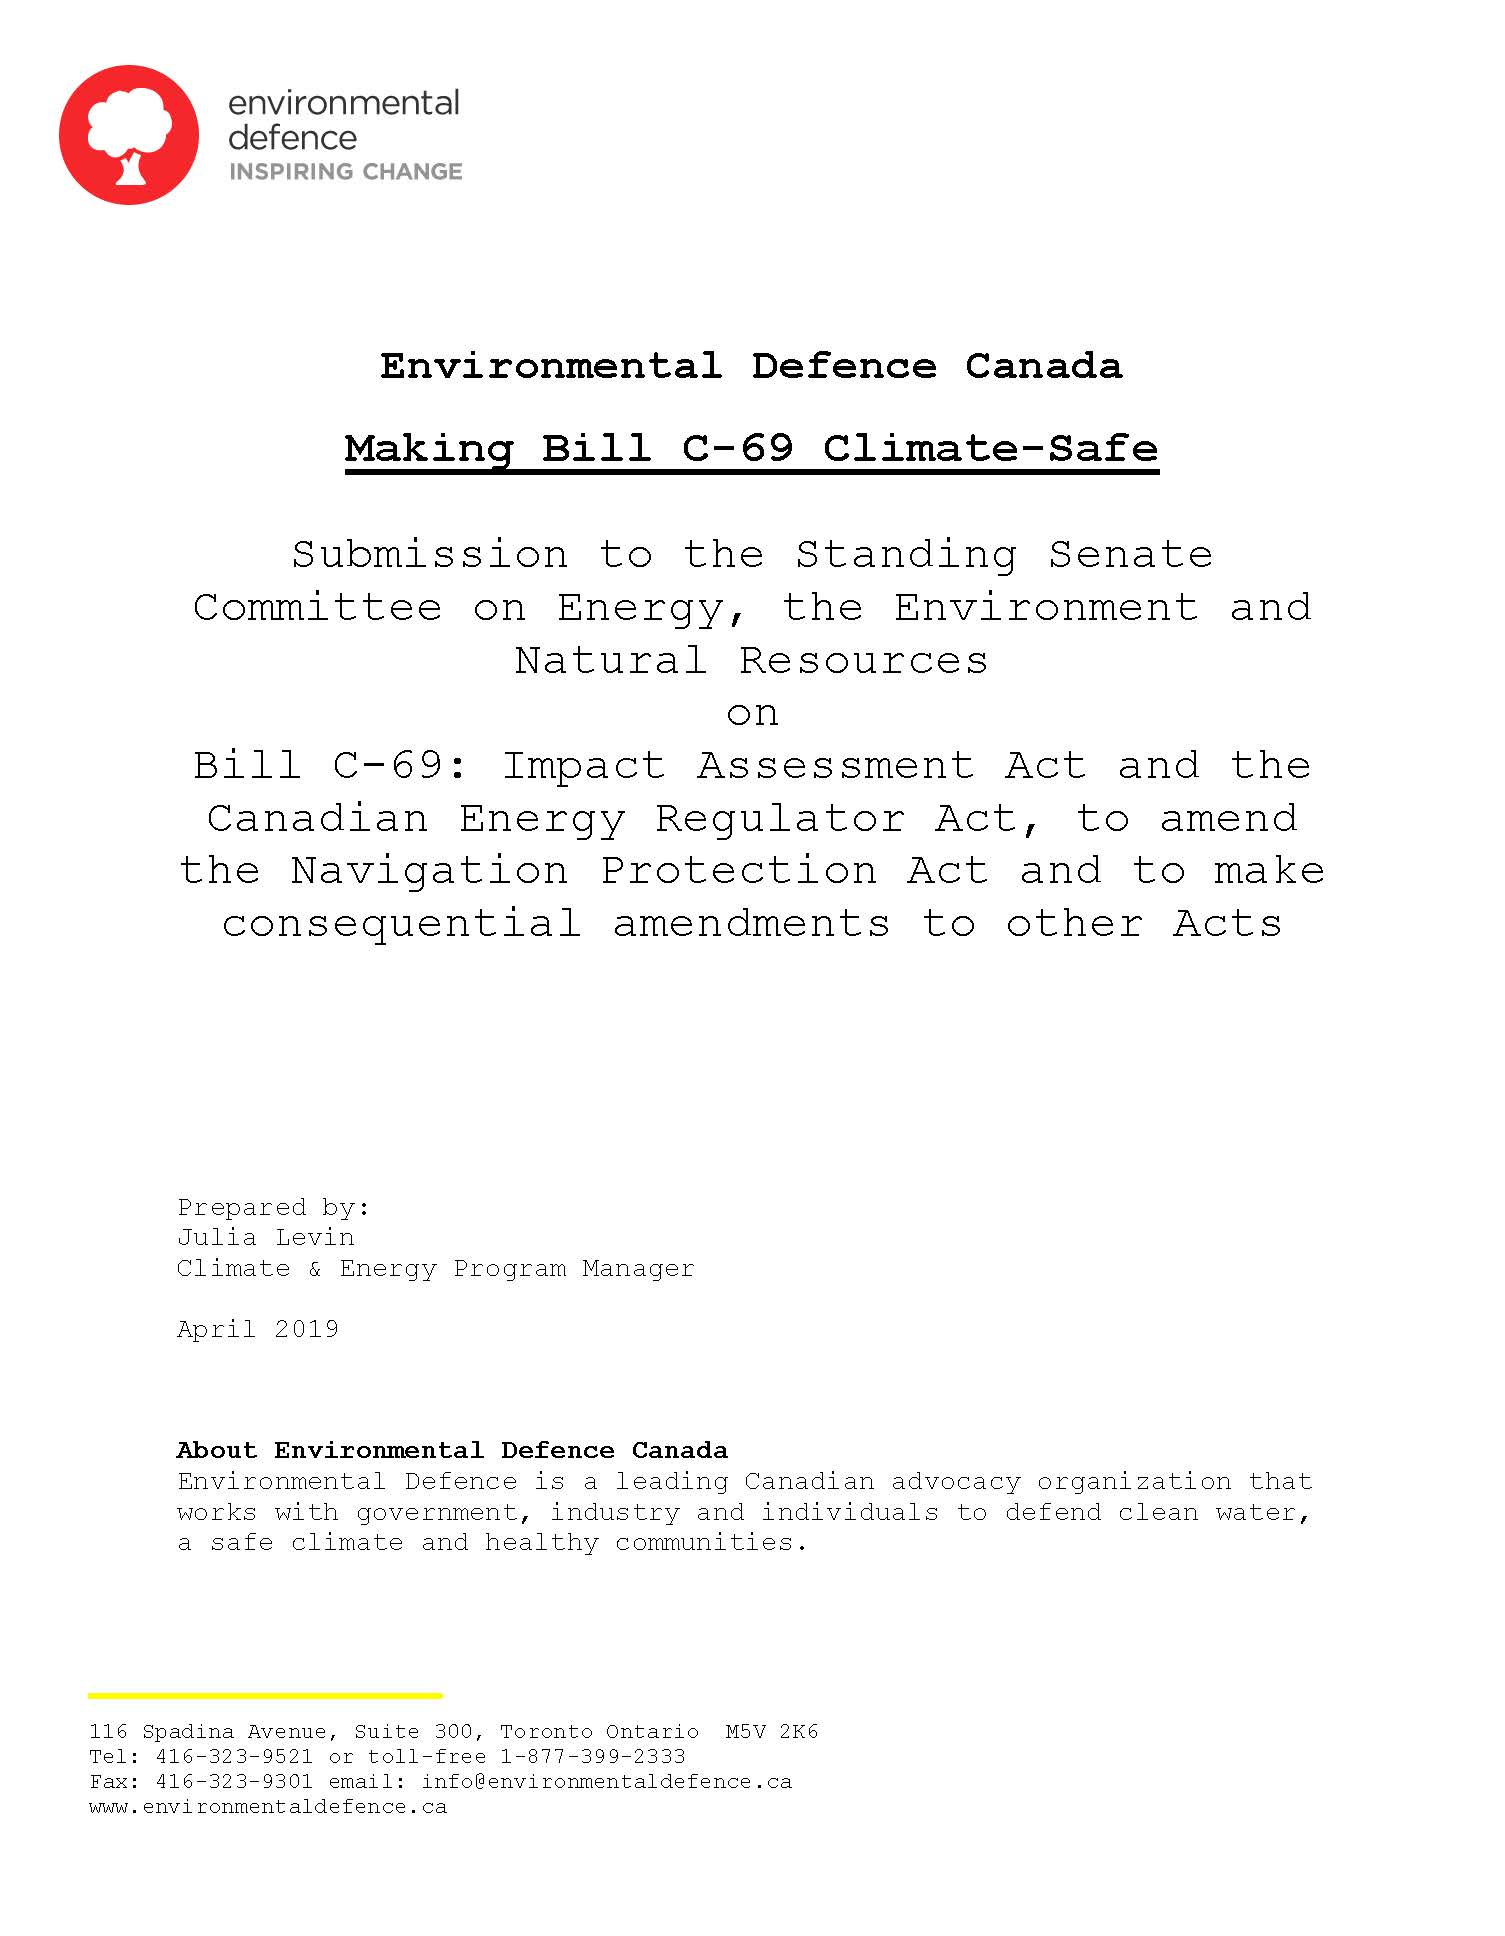 The cover of Environmental Defence's submission to the Senate on Bill C-69